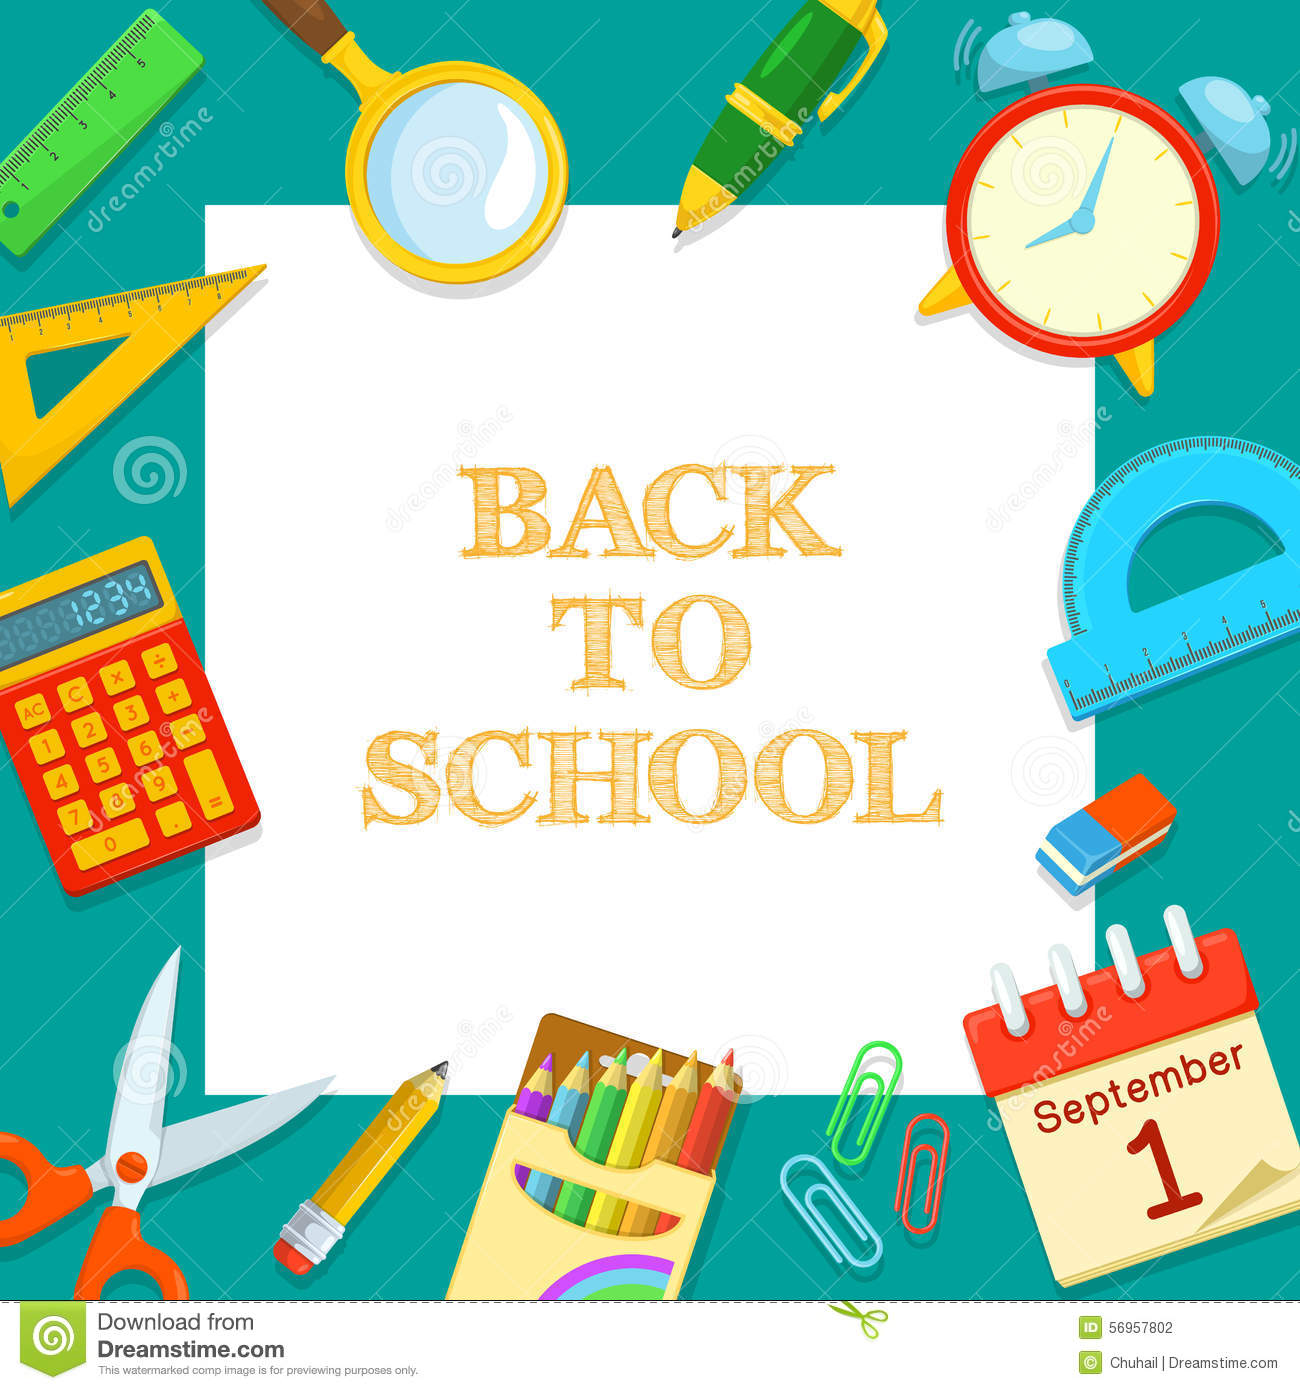 Welcome back to school stock vector. Illustration of ...